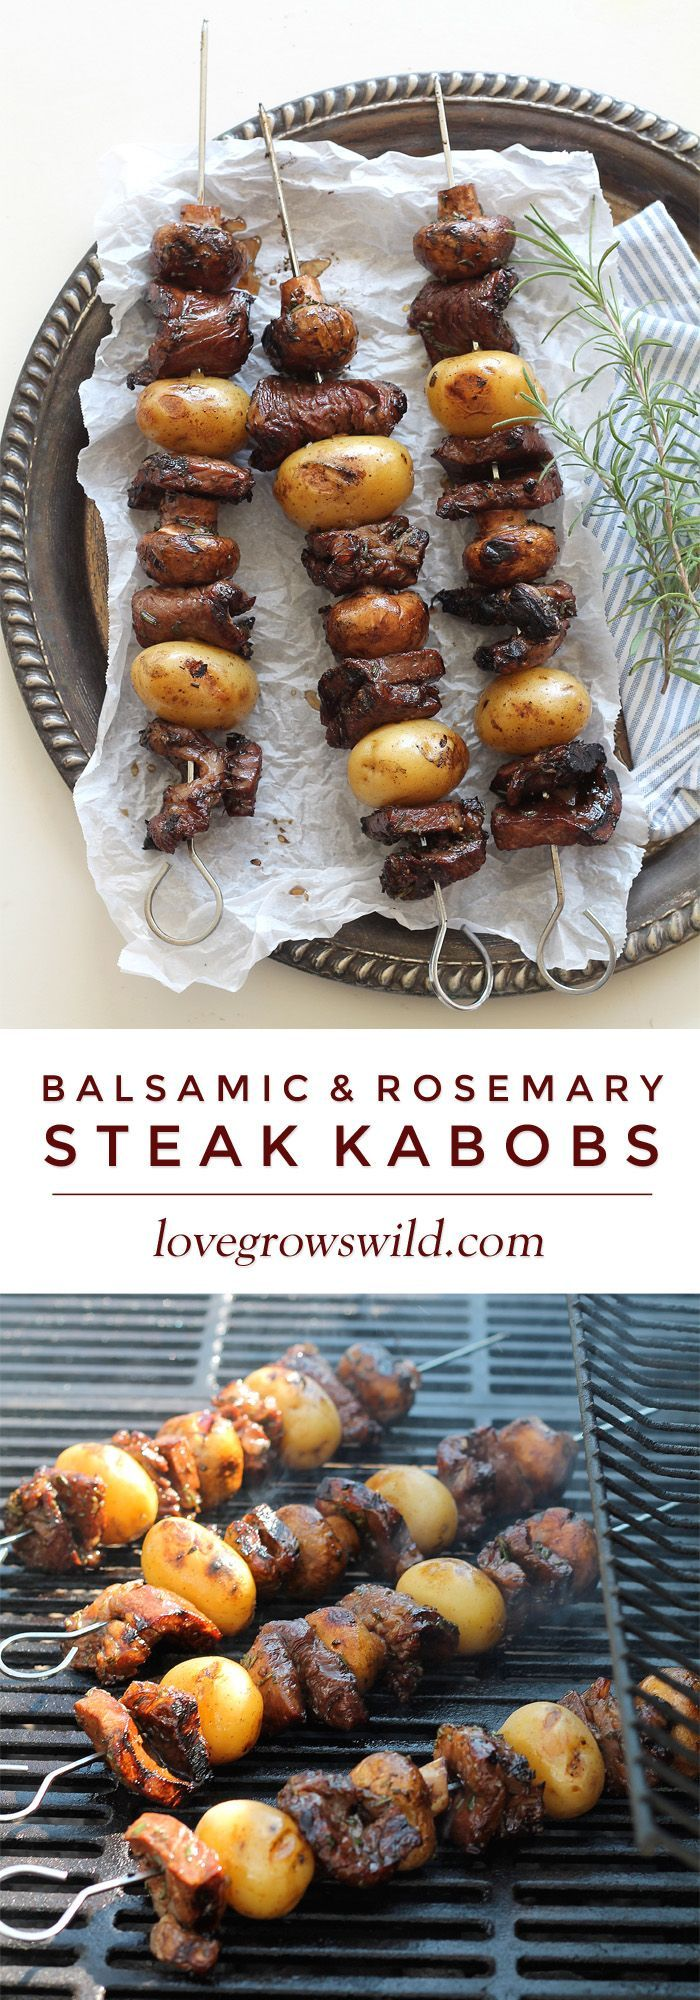 Balsamic & Rosemary Steak Kabobs - http://lovegrowswild.com/2014/10/balsamic-rosemary-steak-kabobs/